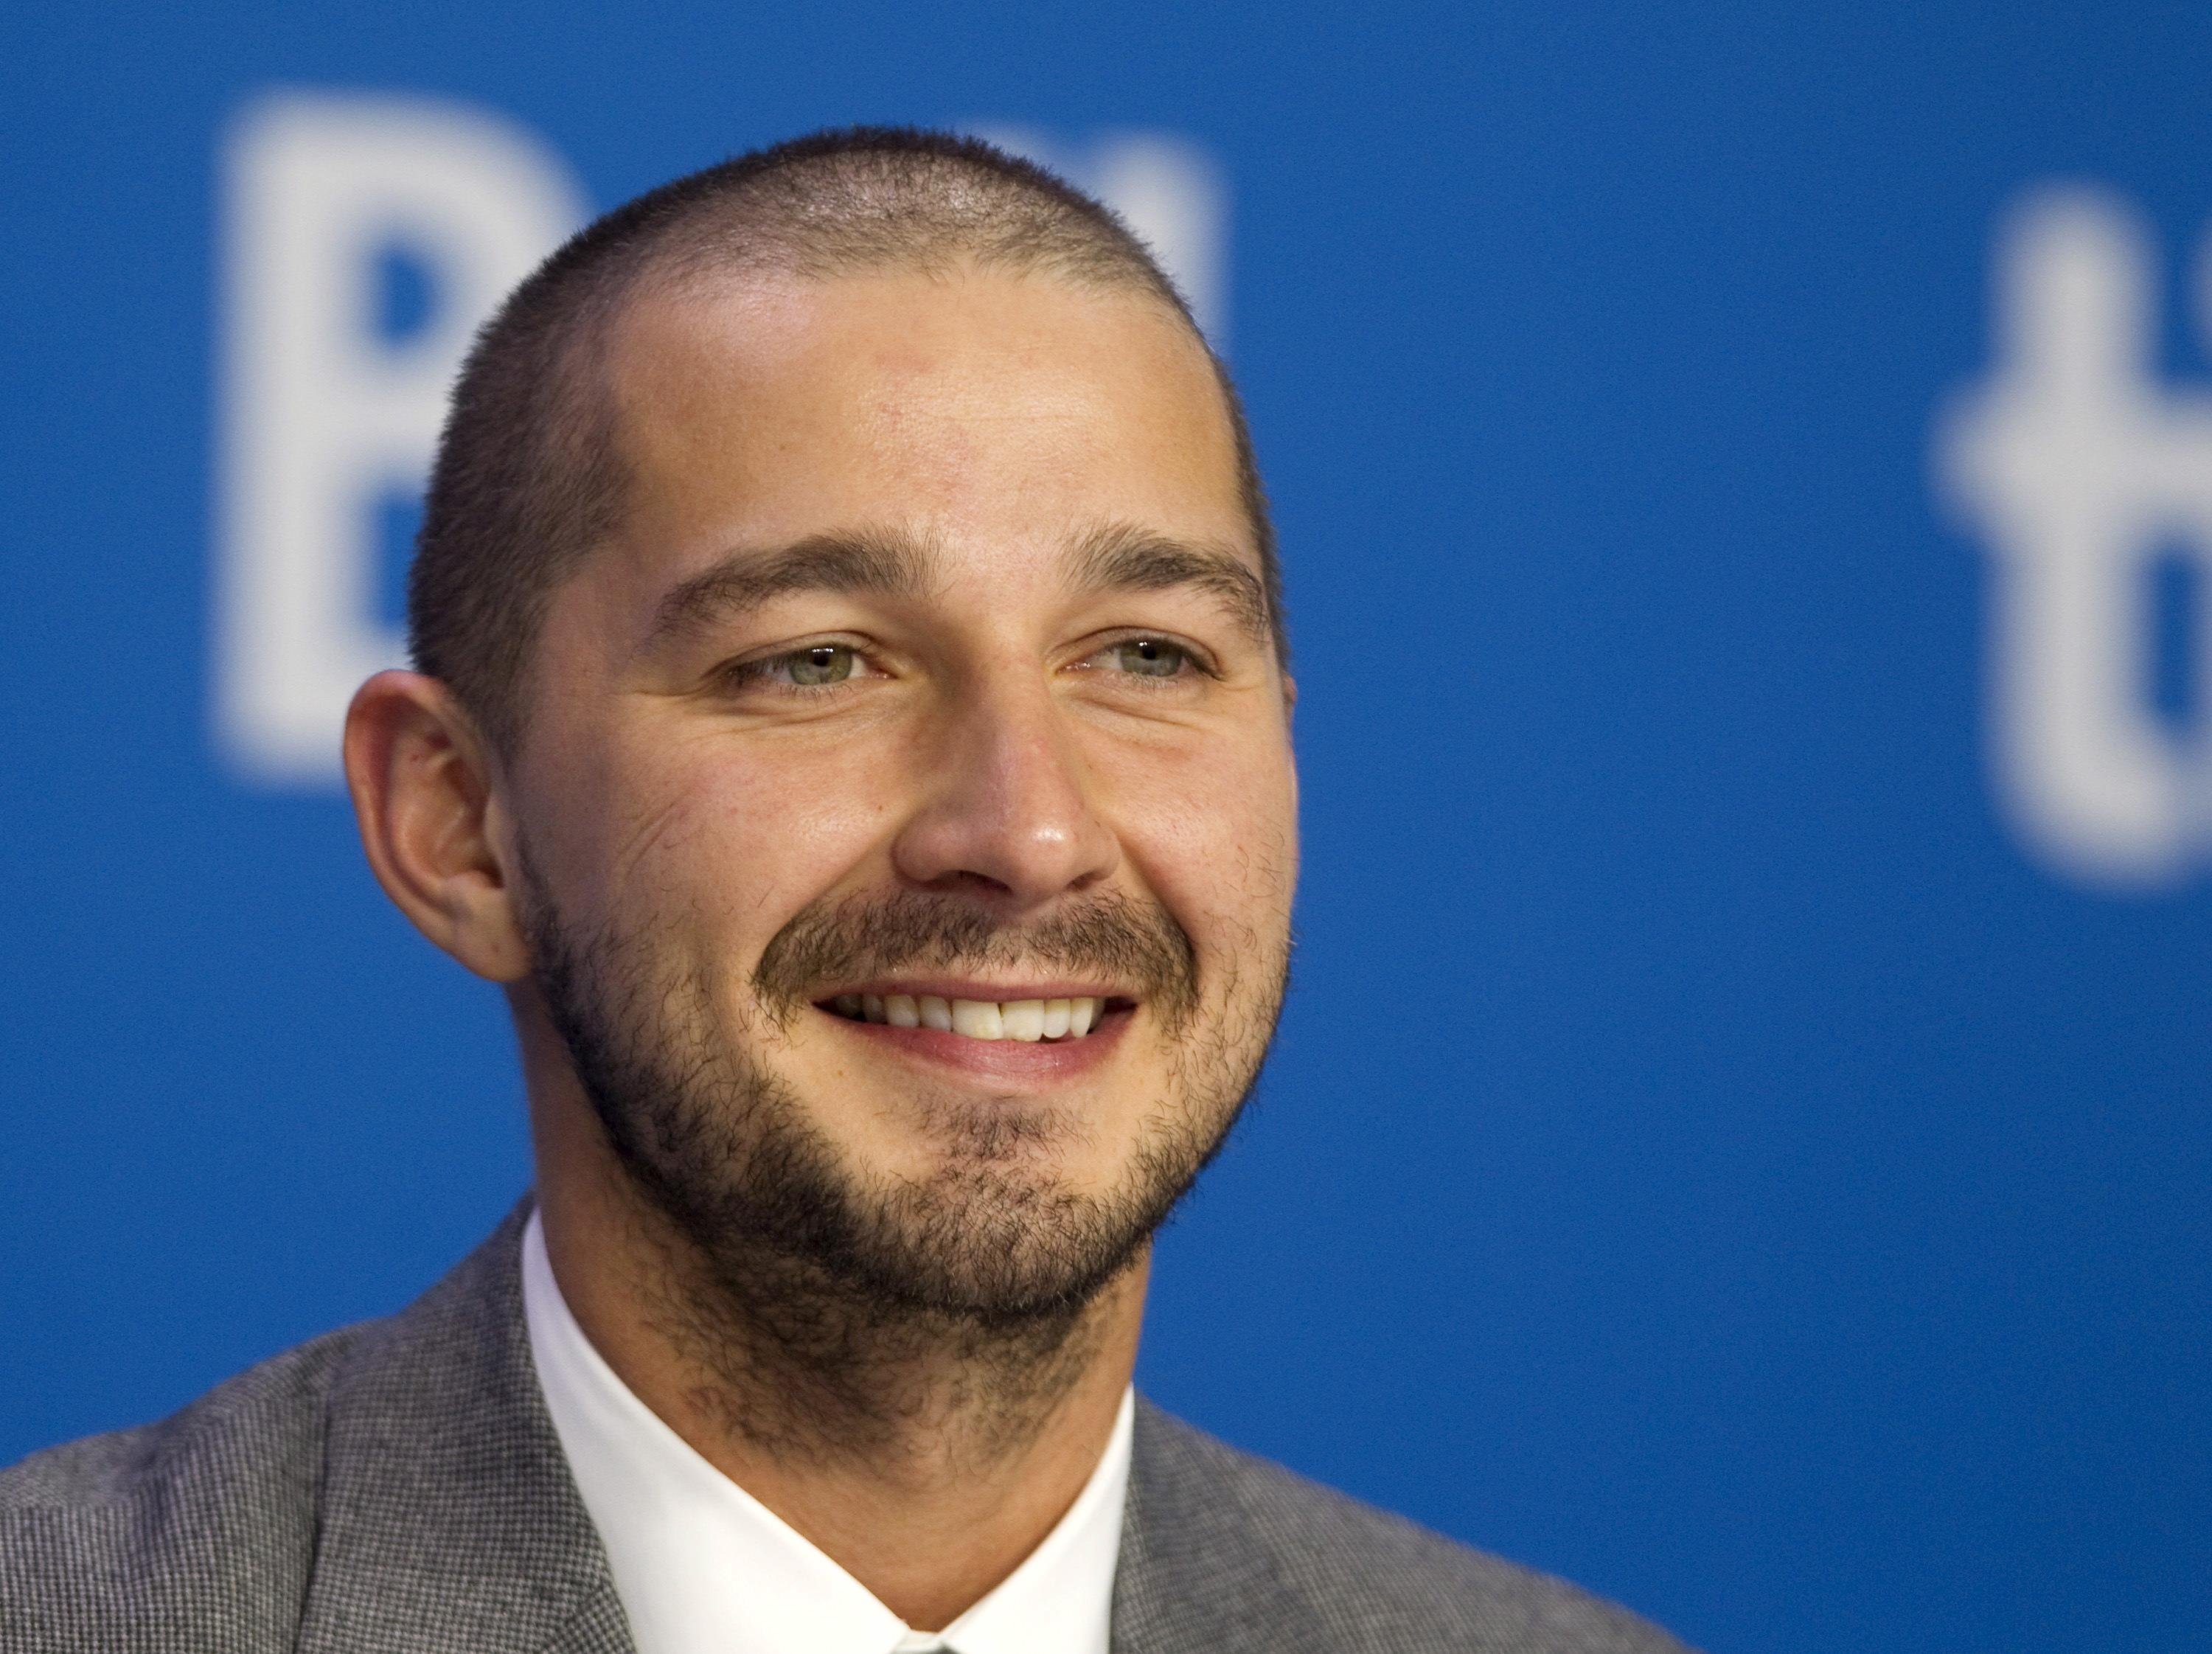 Shia LaBeouf Arrested For Assaut at Anti-Trump Protest in NYC